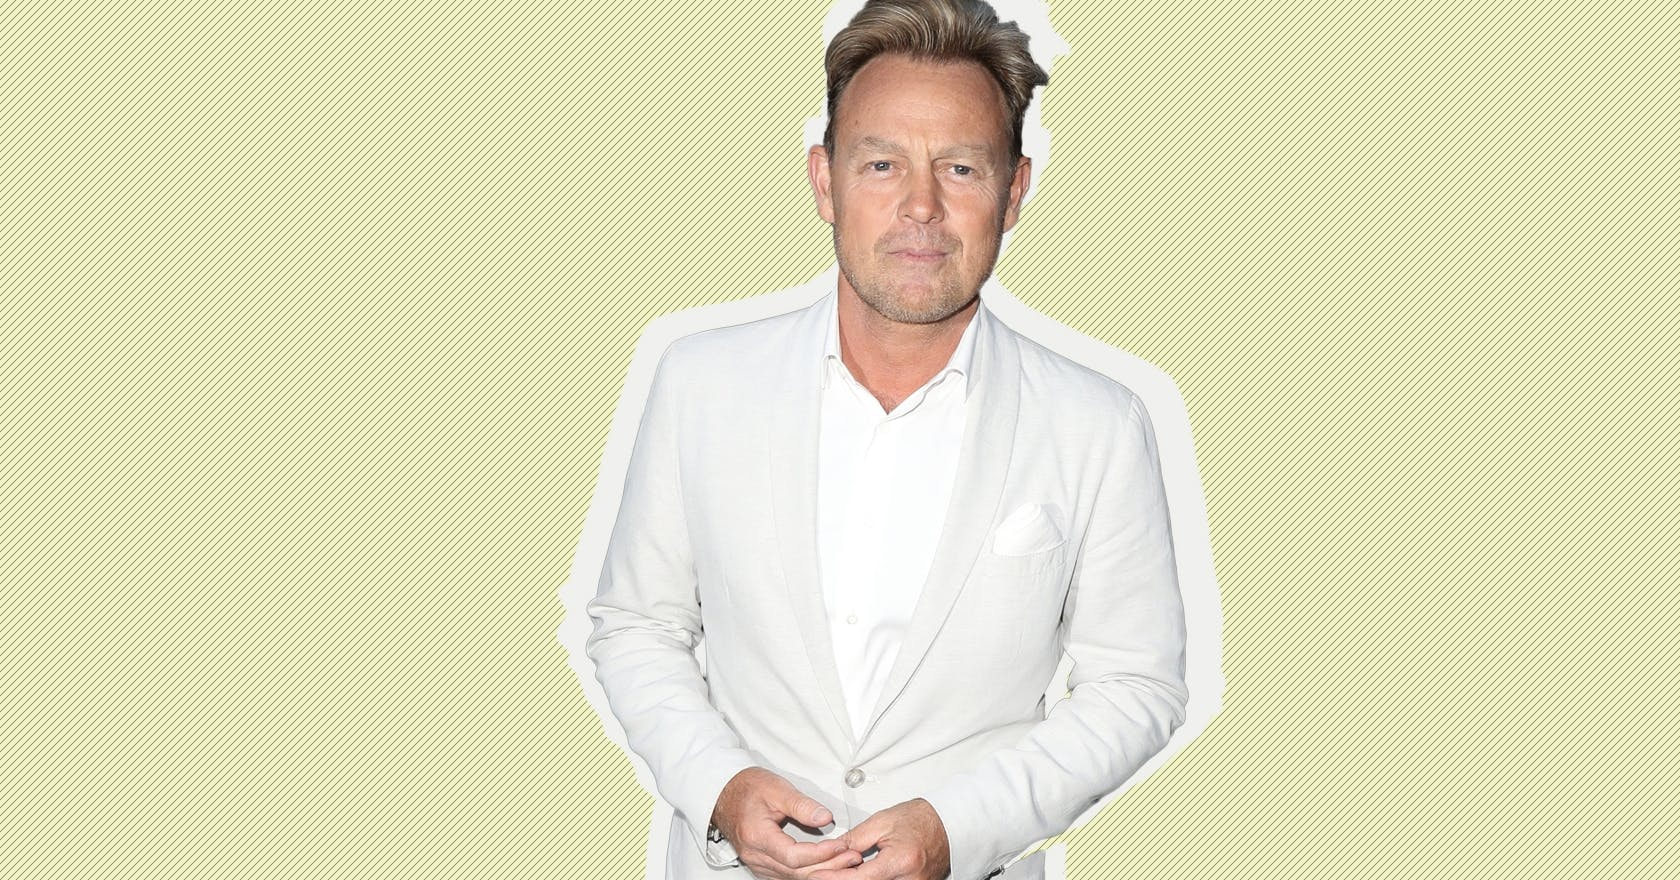 Jason Donovan tackling a neighbour's fire in his underwear is the best story we've read all week